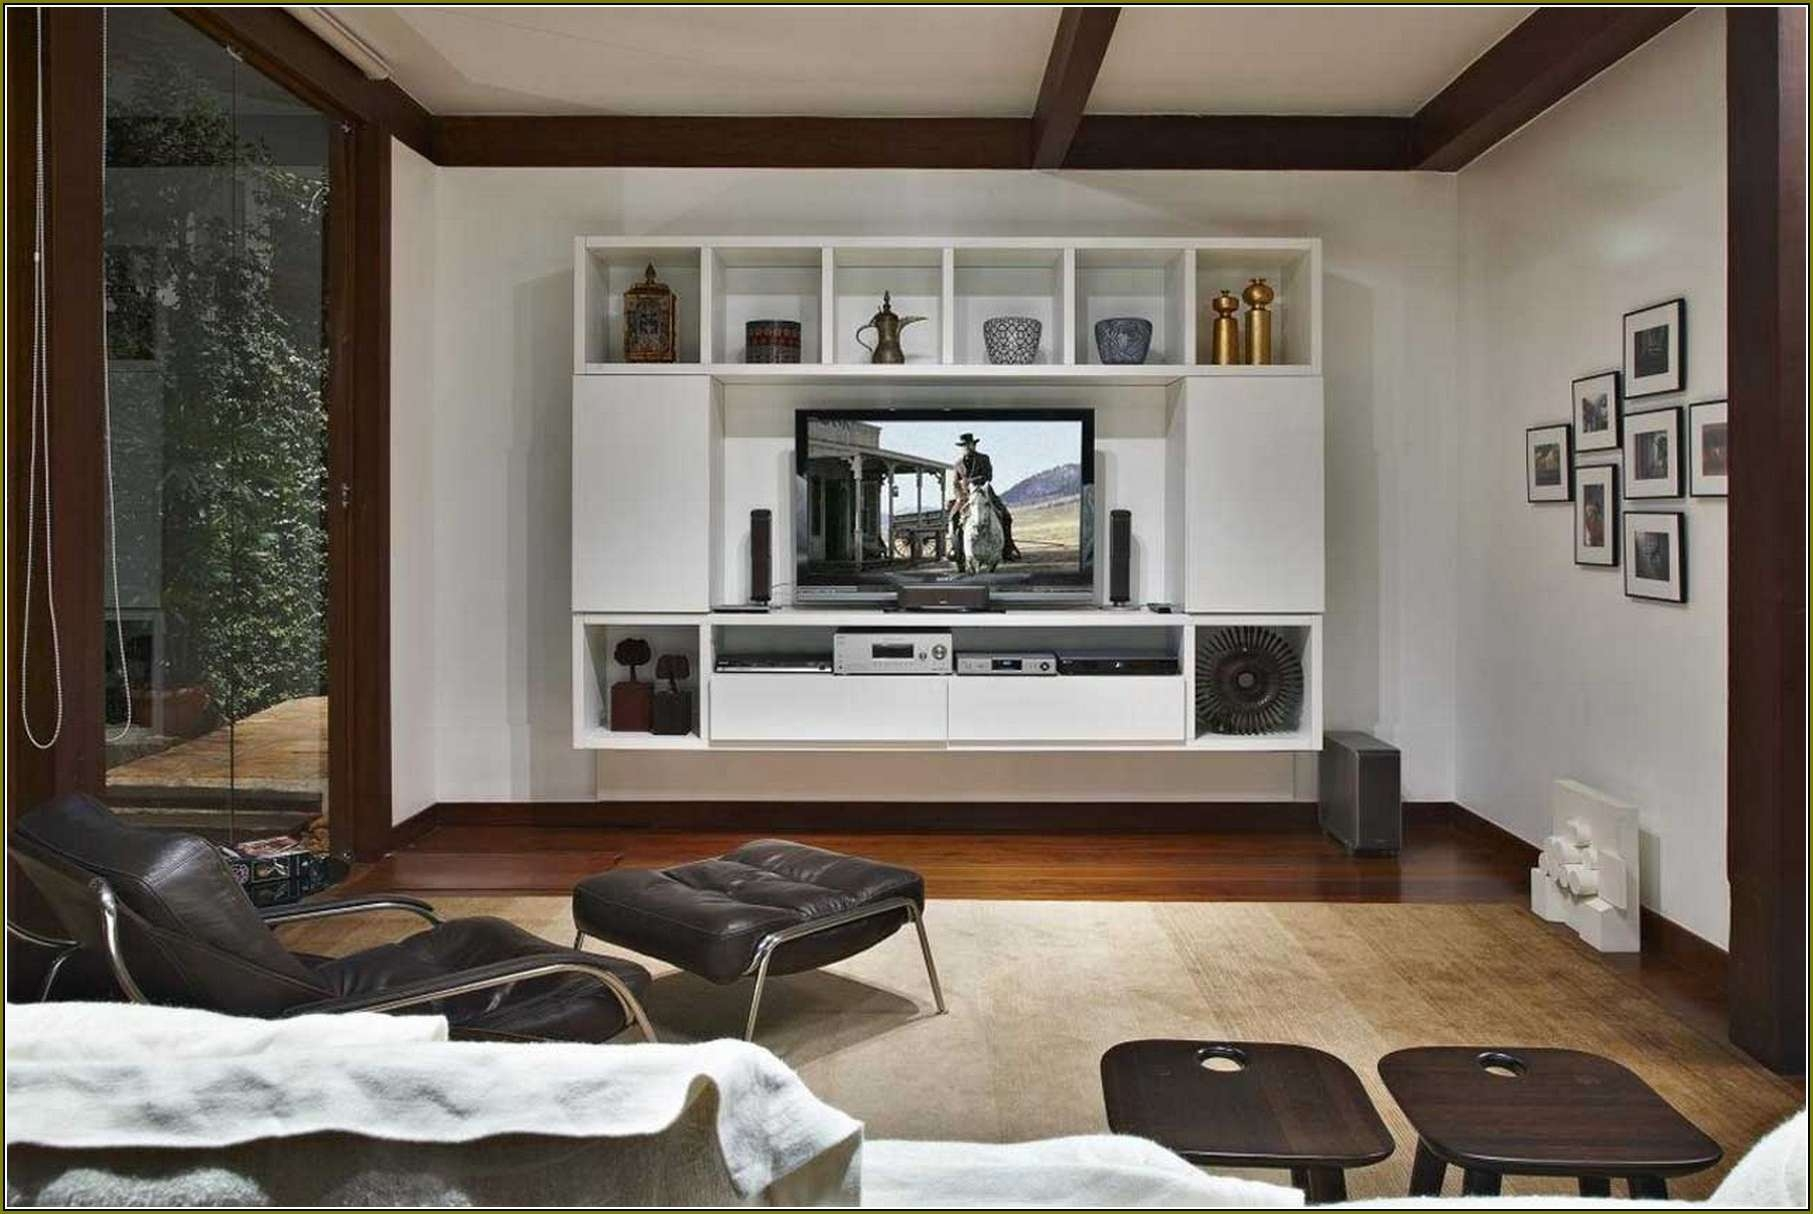 Flat Screen Tv Setup Ideas 20 Photos Wall Mounted Tv Cabinets For Flat Screens